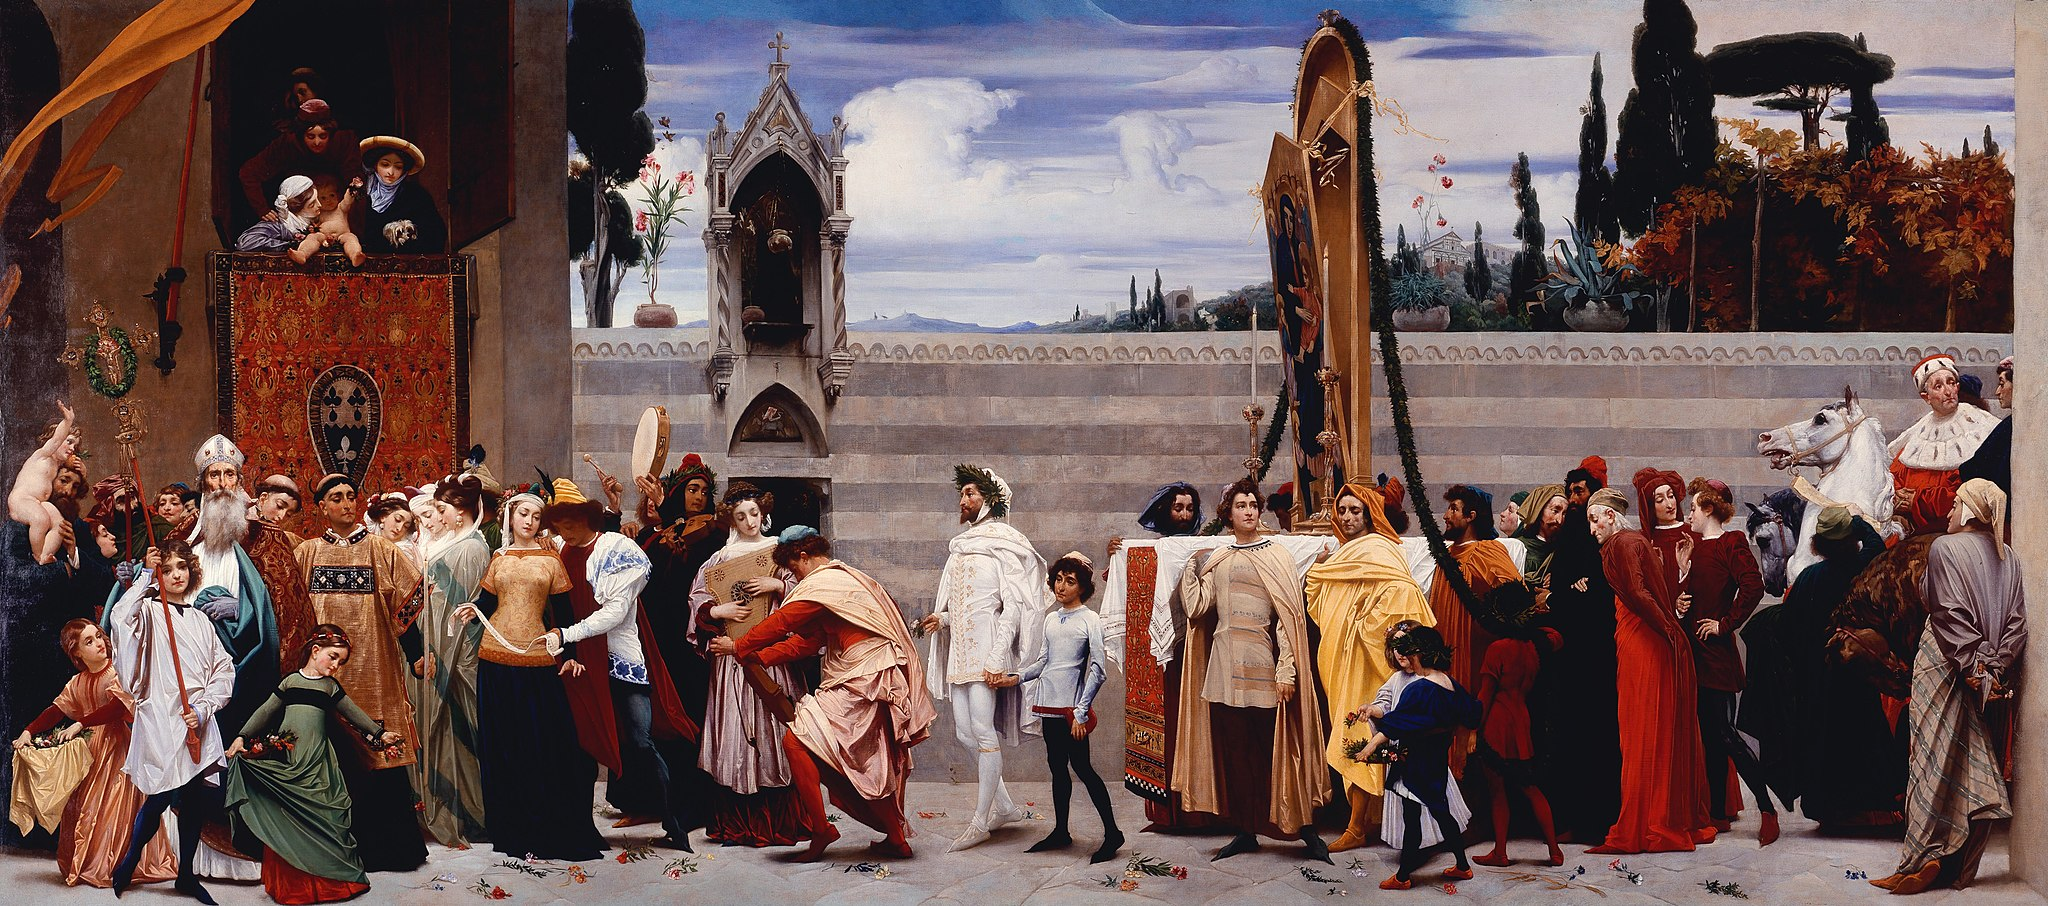 Frederic Leighton, Cimabue's Celebrated Madonna is carried in Procession through the Streets of Florence (detail), The National Gallery, London